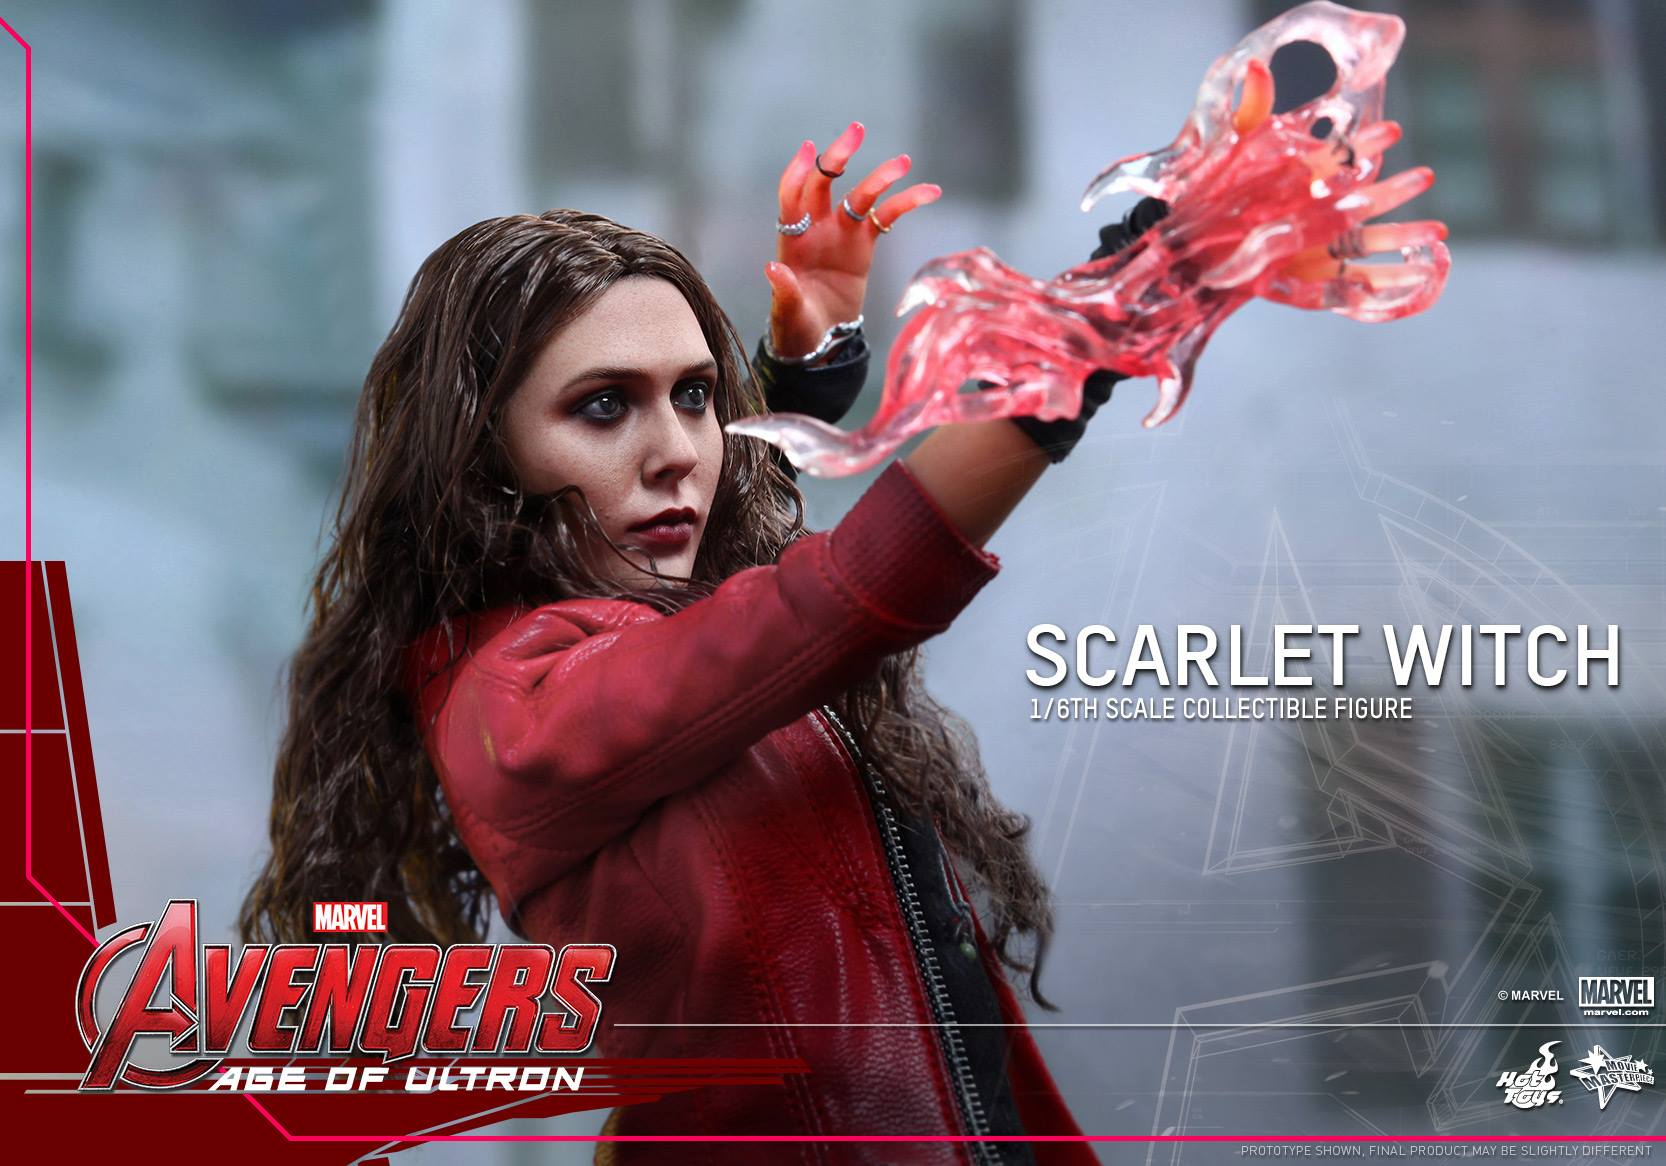 Hot Toys Reveals Avengers: Age of Ultron's Scarlet Witch Premium ...